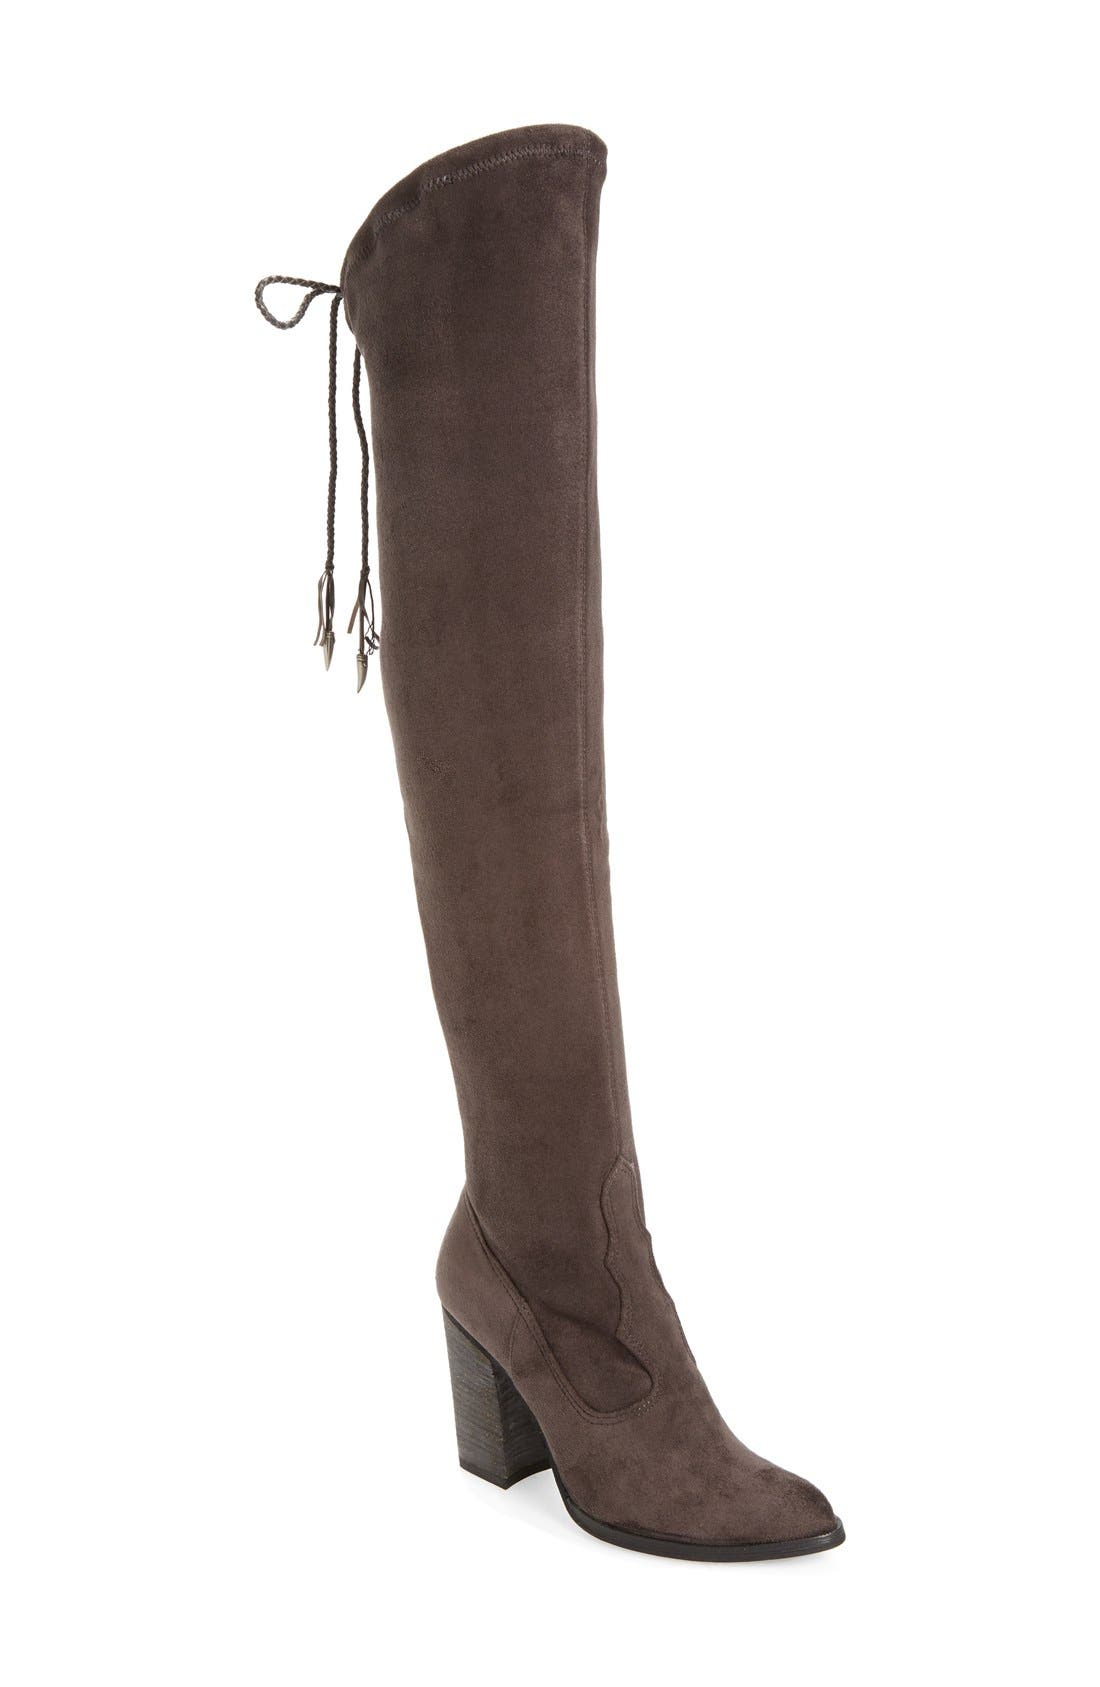 Main Image - Dolce Vita 'Chance' Over the Knee Stretch Boot (Women) (Narrow Calf)